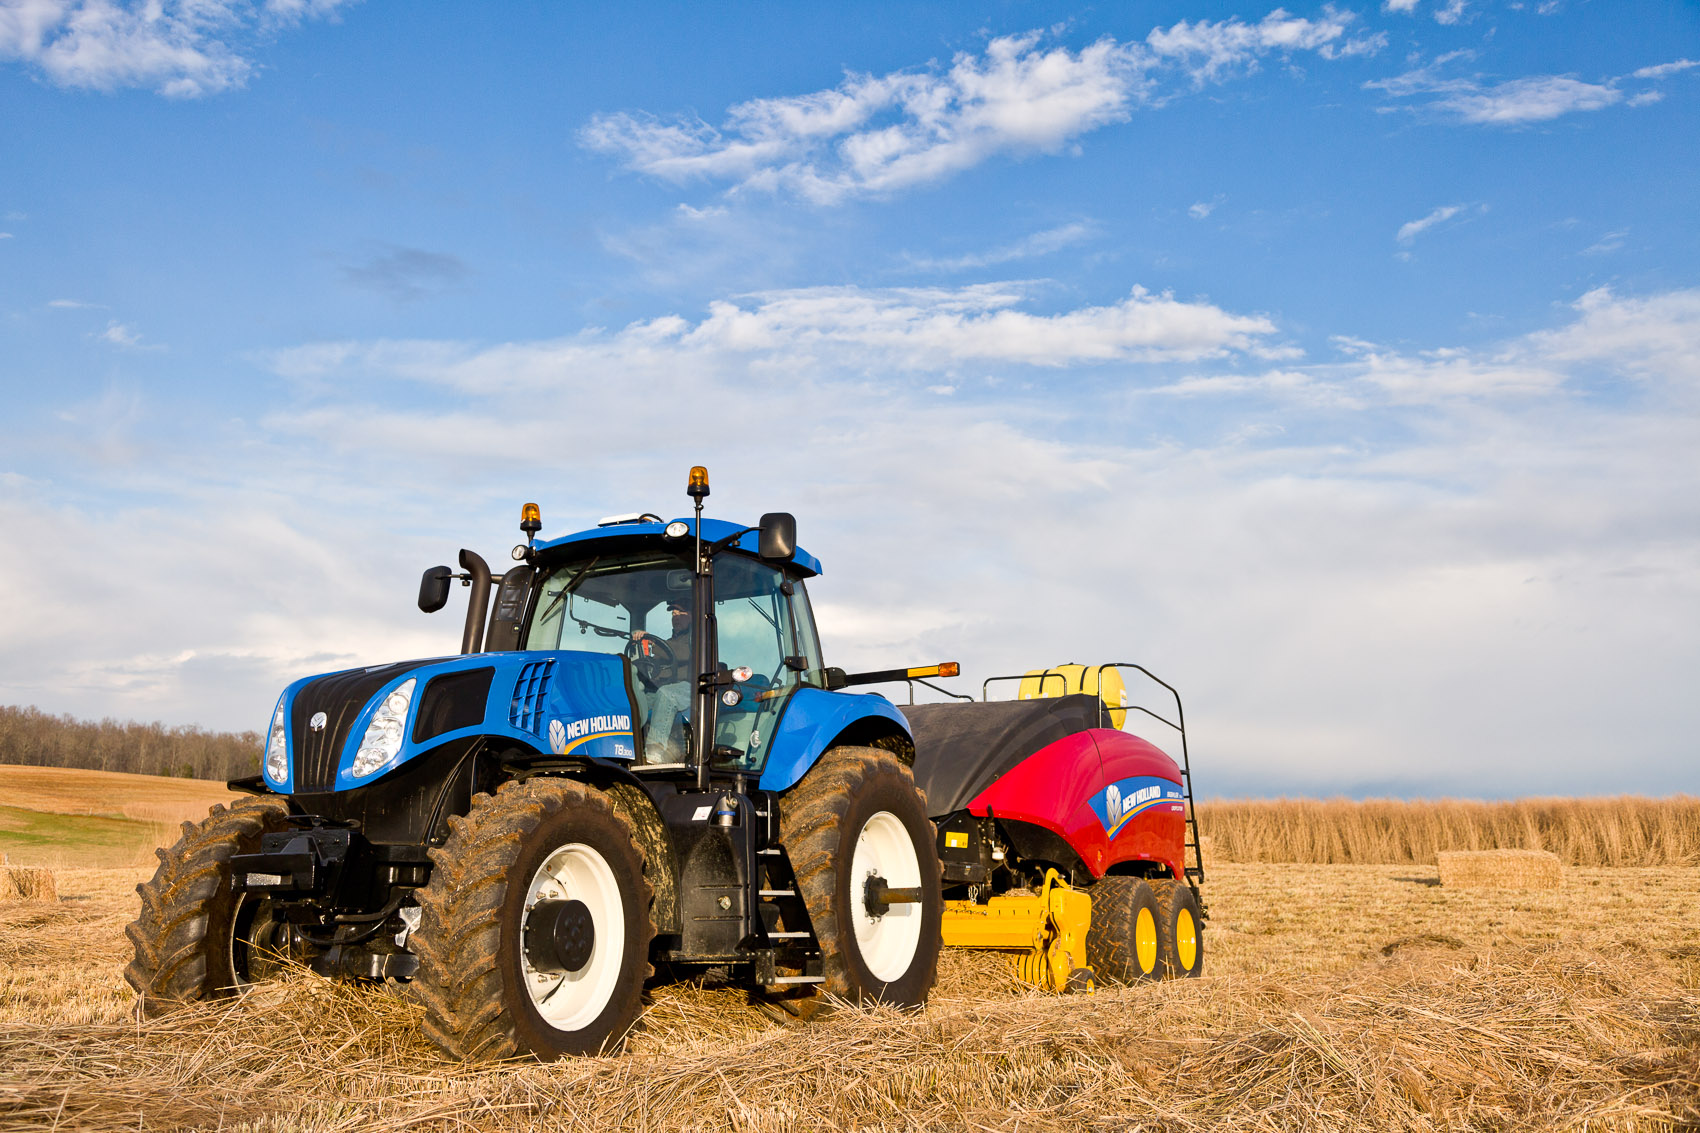 New Holland T8.300 Tractor with BB340 CropCutter Large Square Baler | J. Eldon Zimmerman Photography | Lancaster, PA Agriculture Photographer